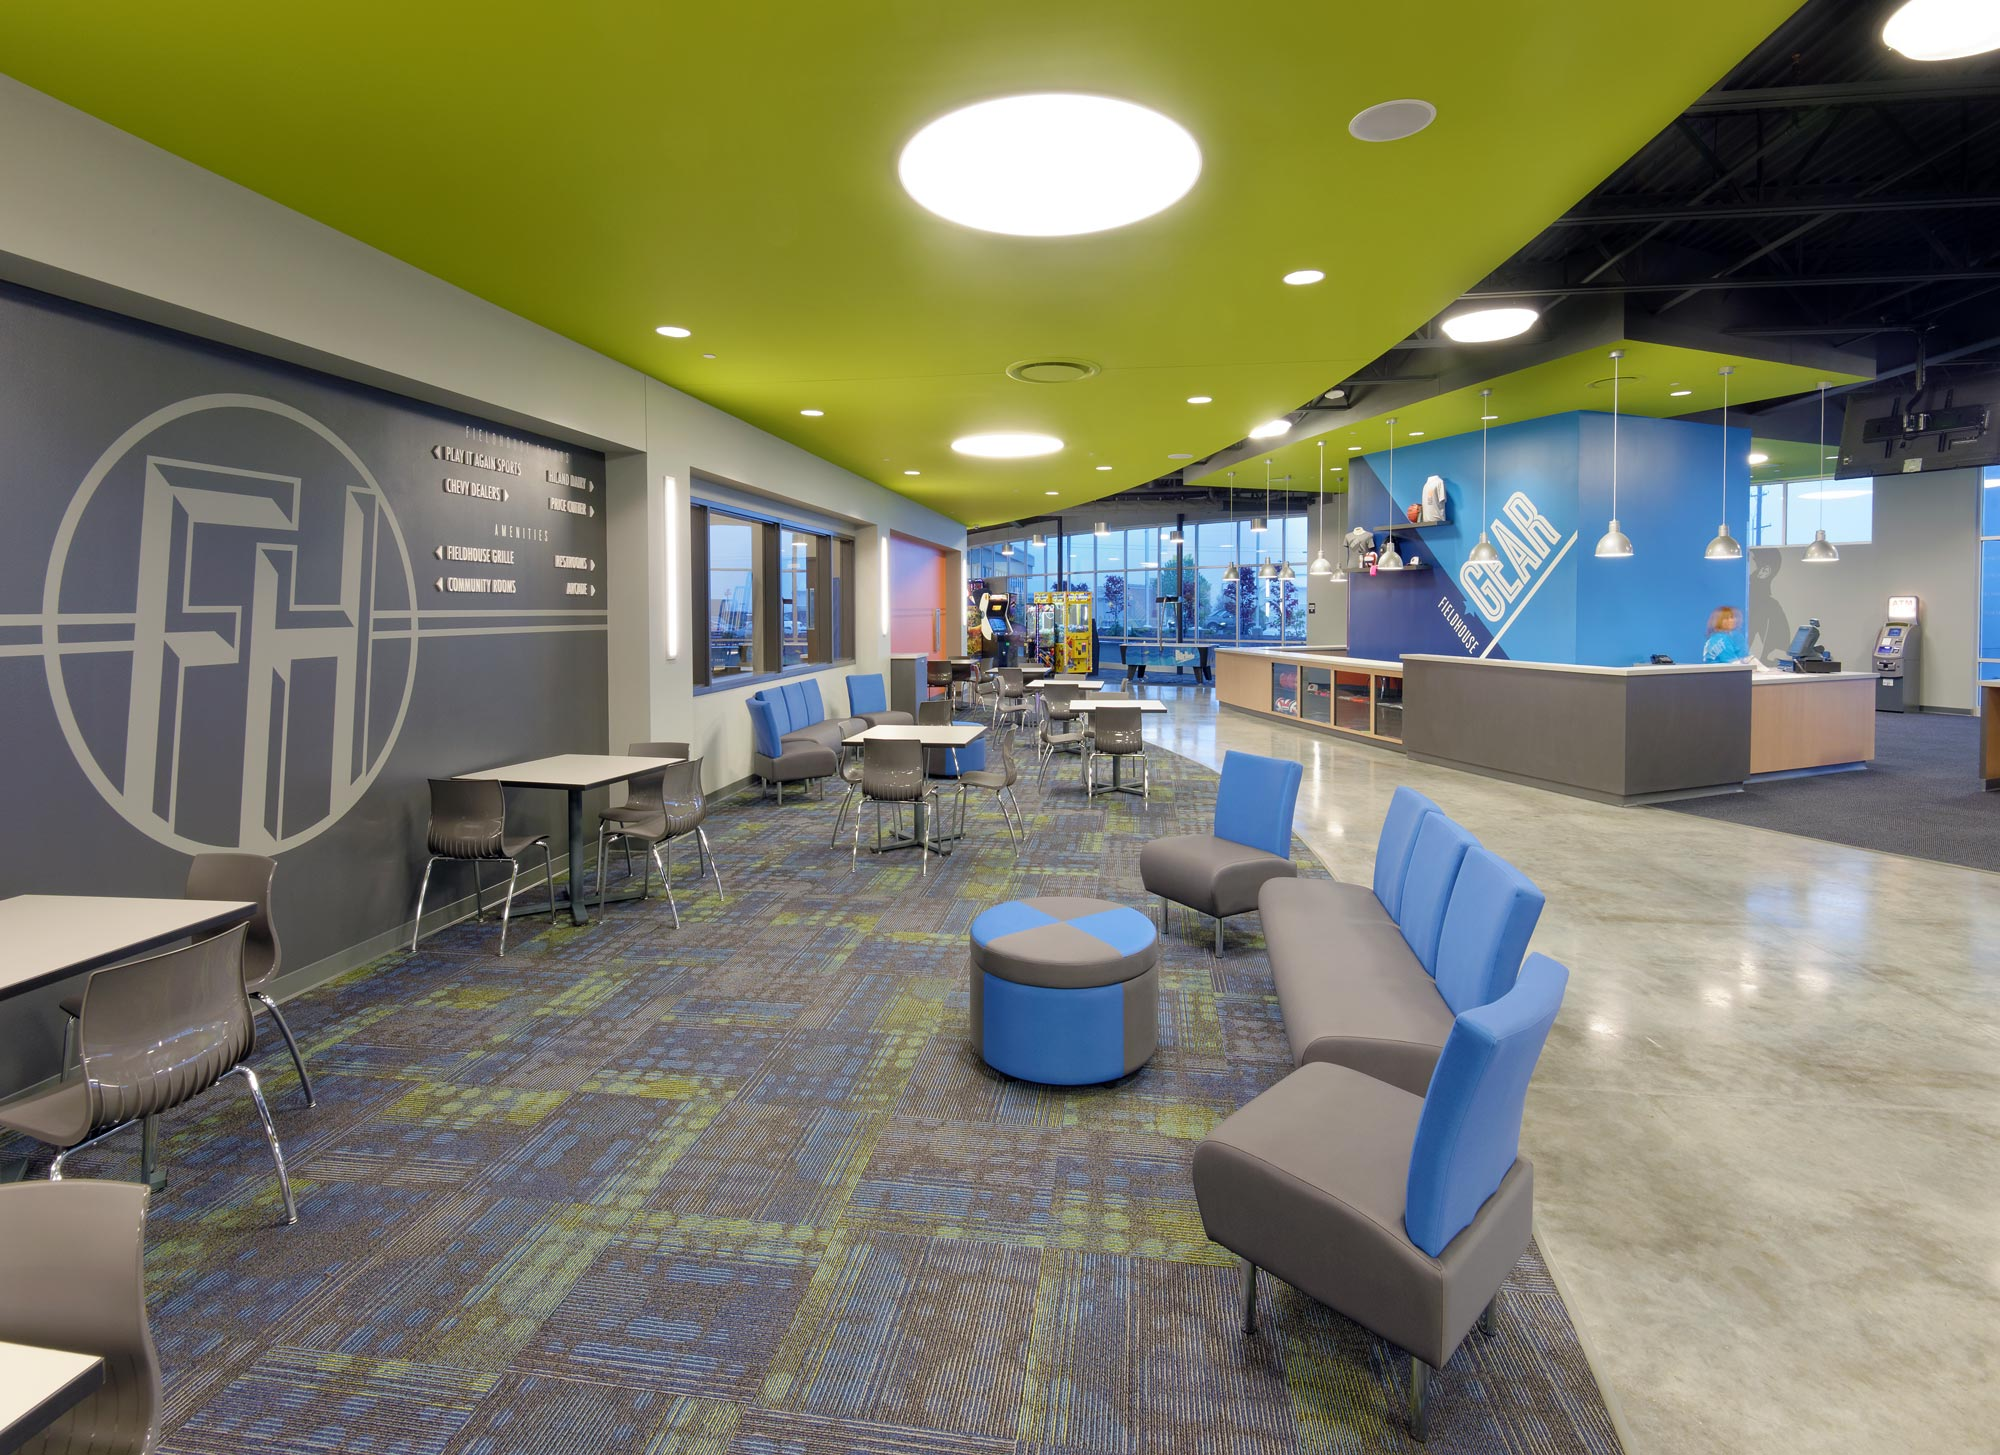 Fieldhouse-Sportscenter-H-Design-Interior-14.jpg